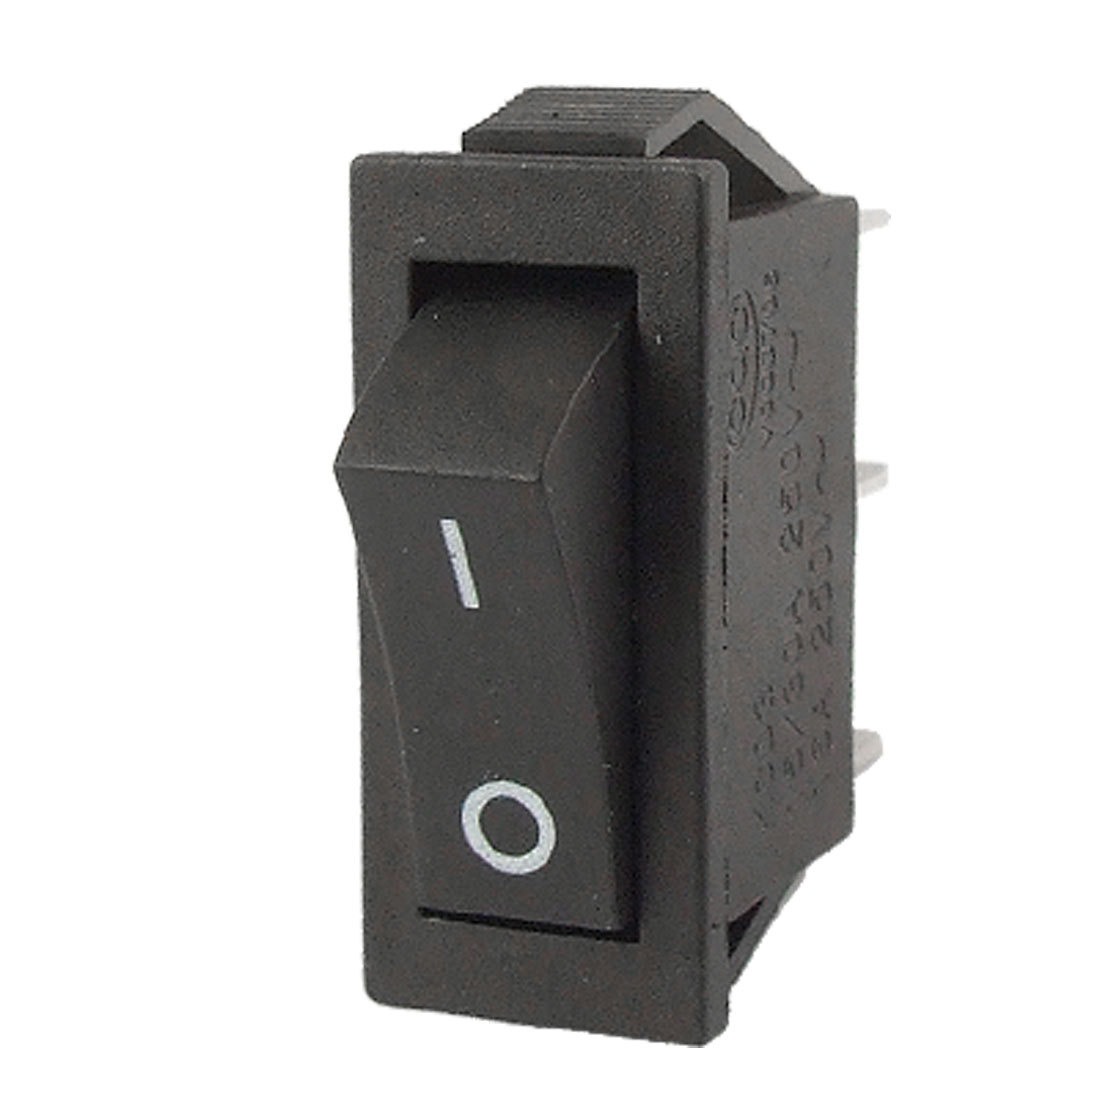 AC 250V 16A 3 Pin ON-ON I/O 2 Position SPDT Snap in Boat Rocker Switch Black